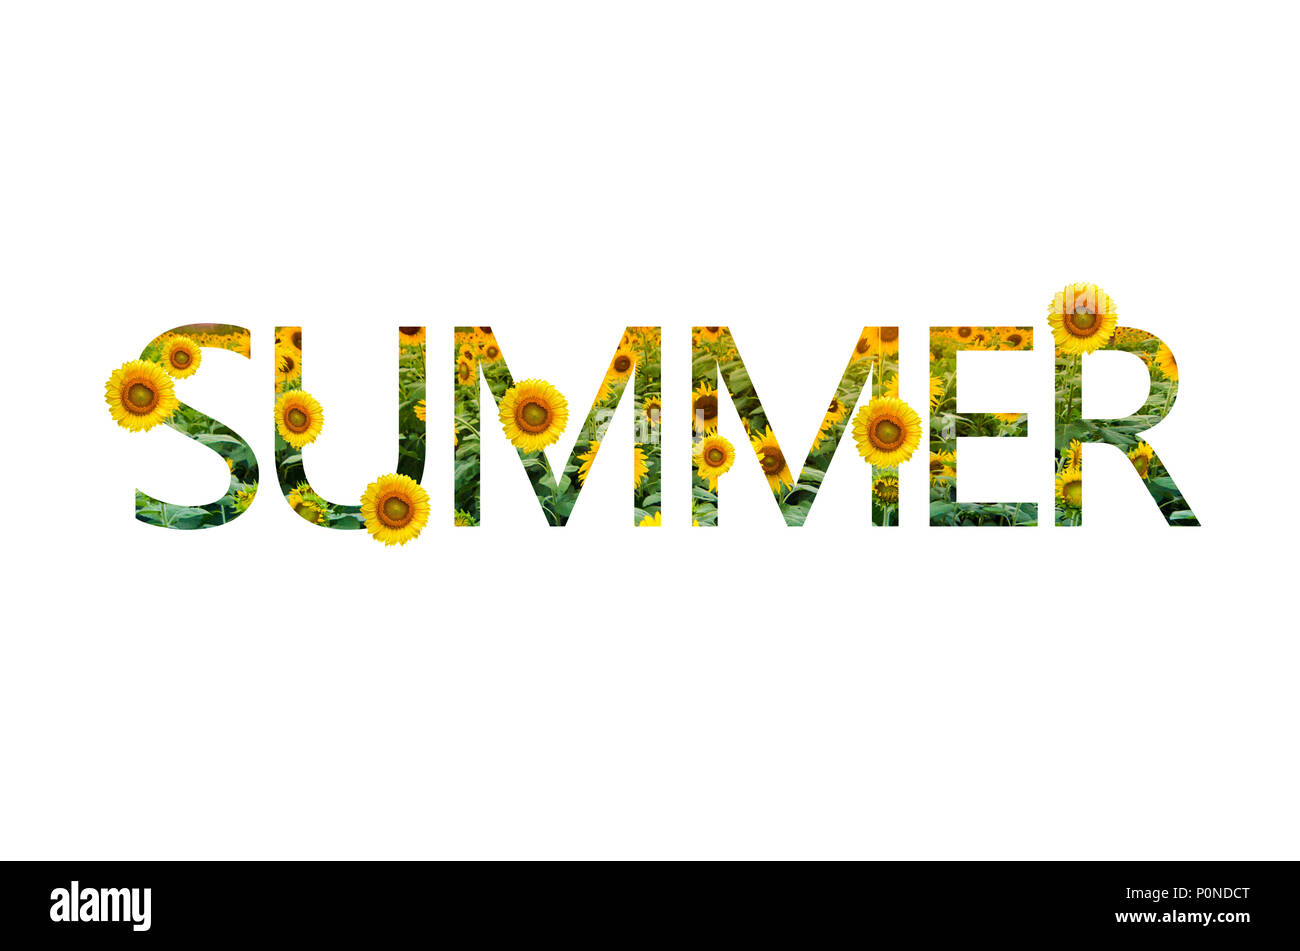 summer words sunflower White background Isolate - Stock Image